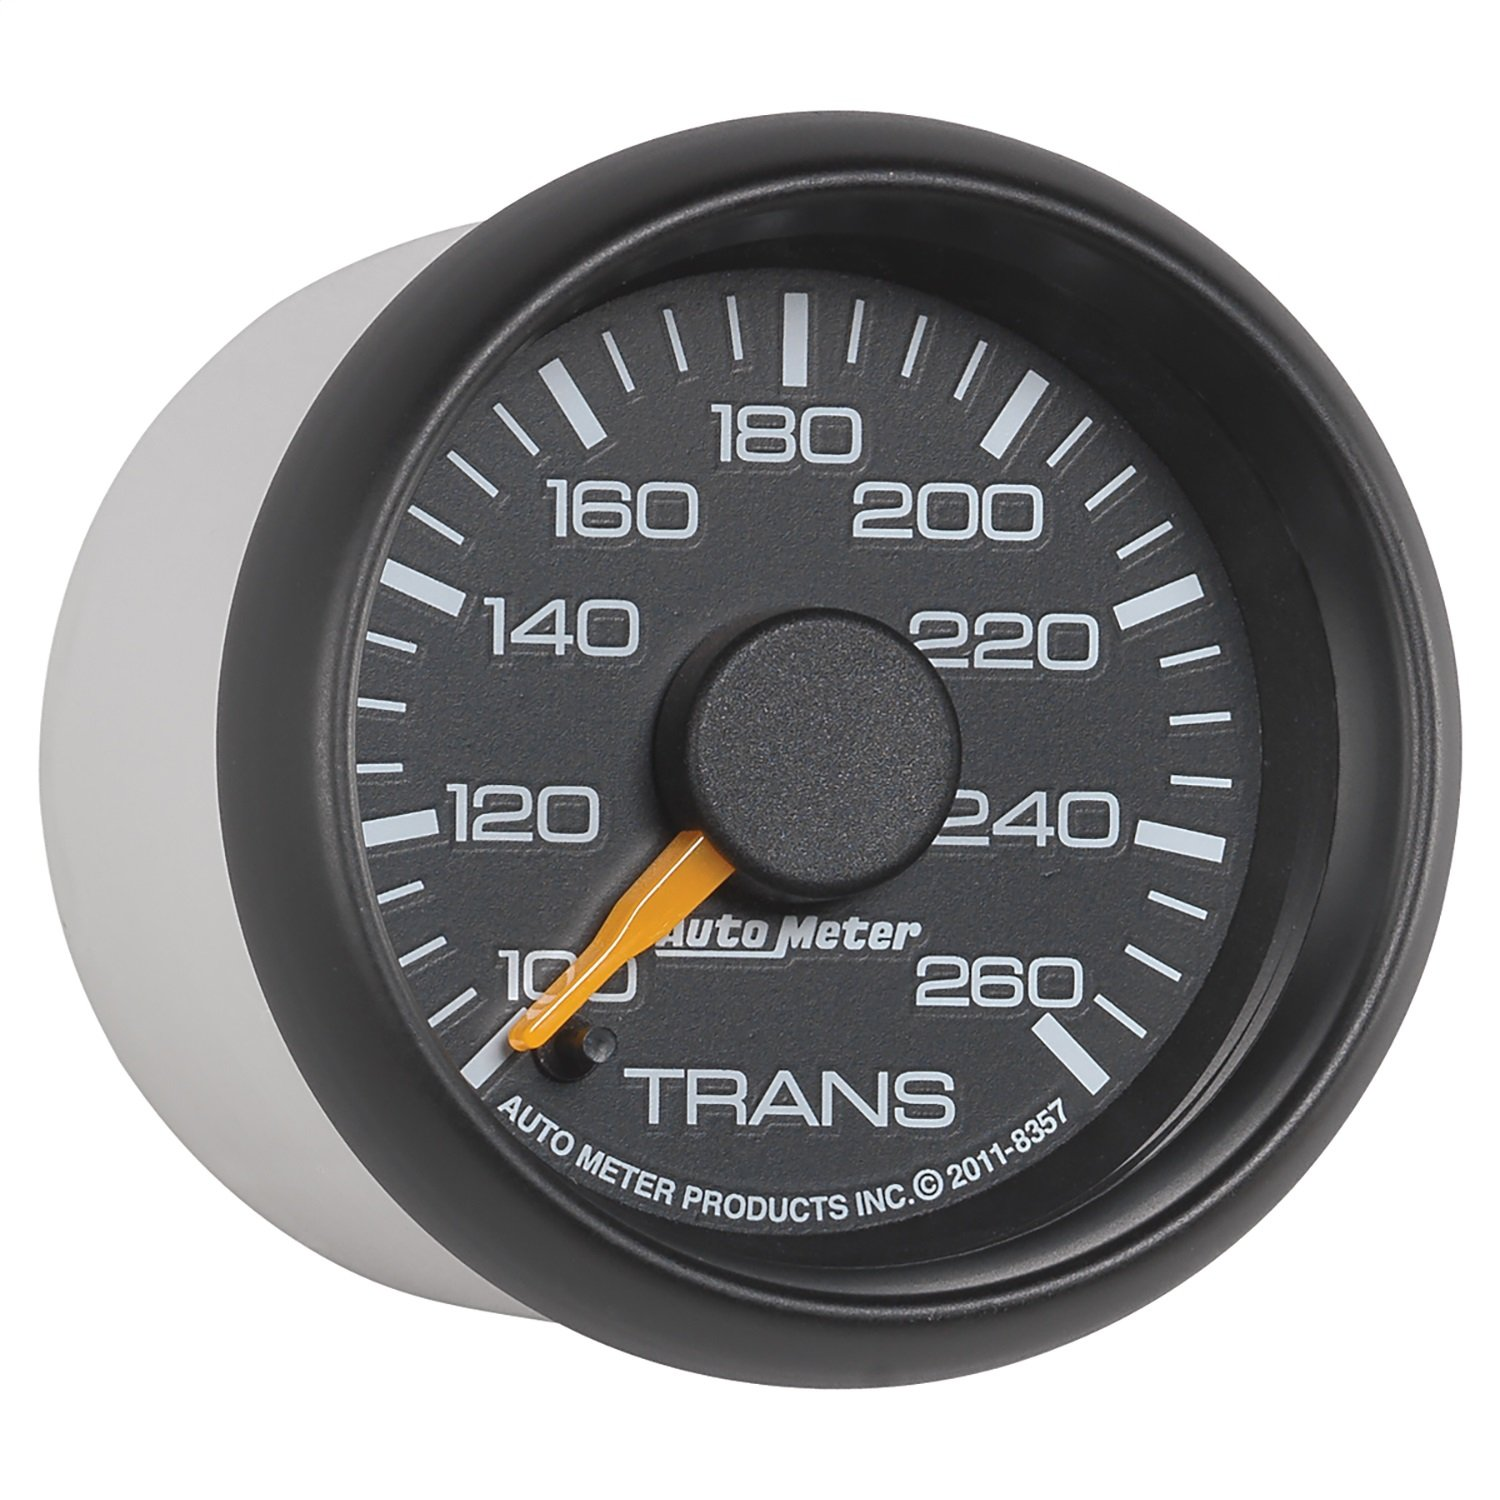 Auto Meter 8357 Chevy Factory Match Electric Transmission Temperature Gauge by Auto Meter